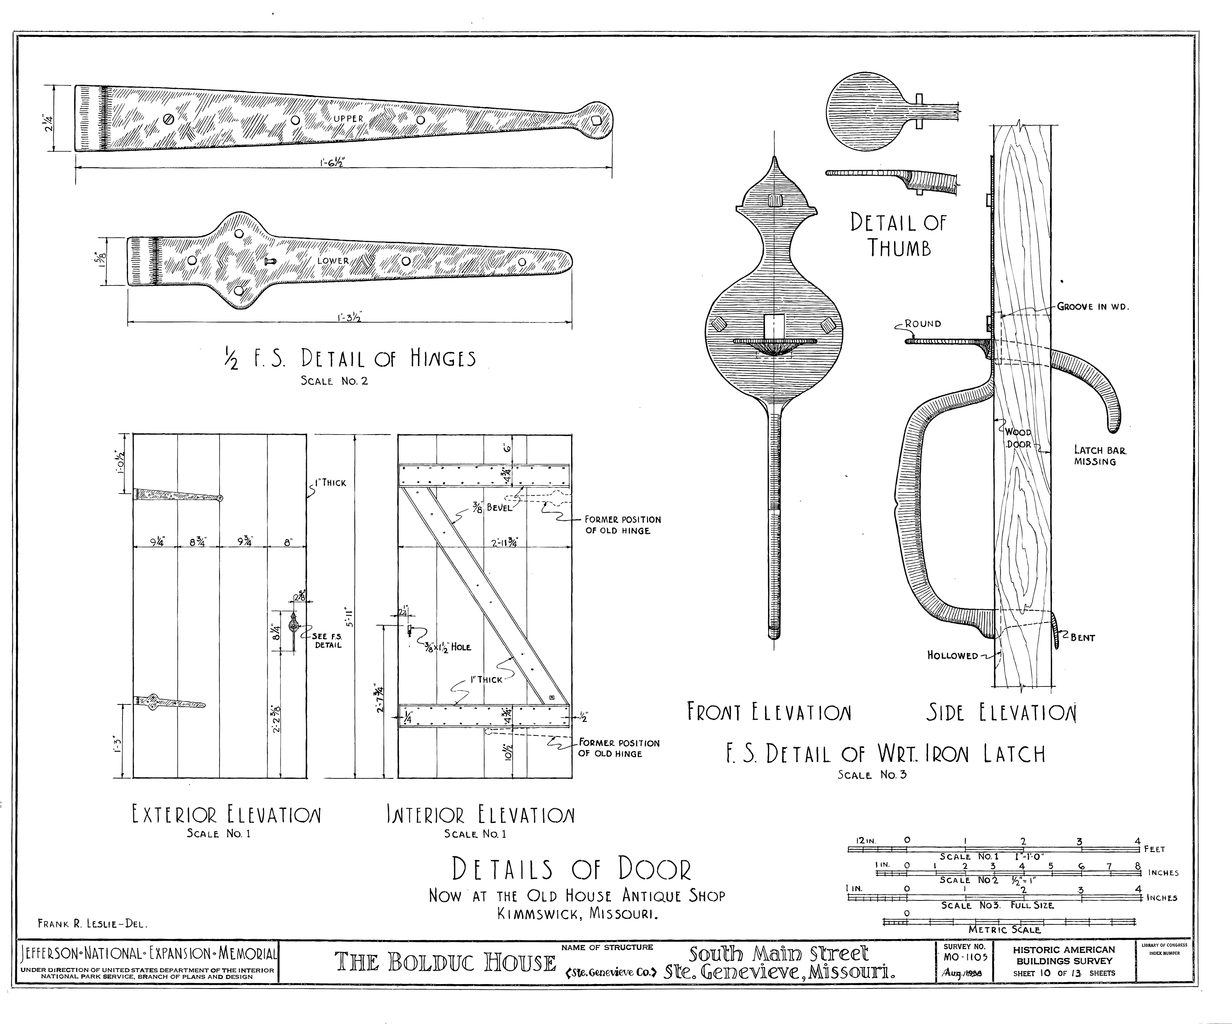 File Drawing Of Door And Latch Details In The Bolduc House